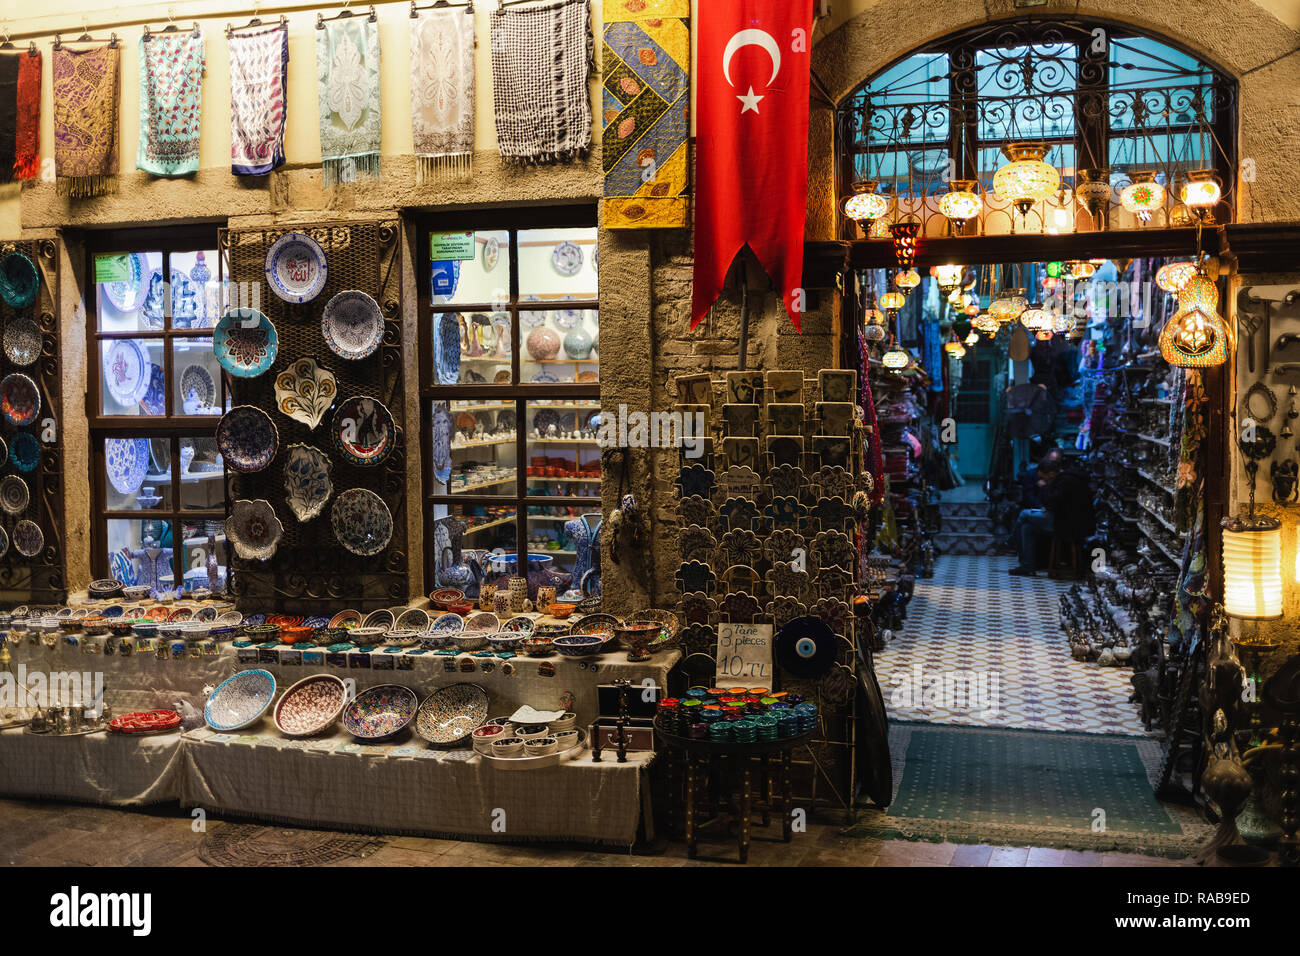 Street Market In Antalya Turkey Stock Photos Amp Street